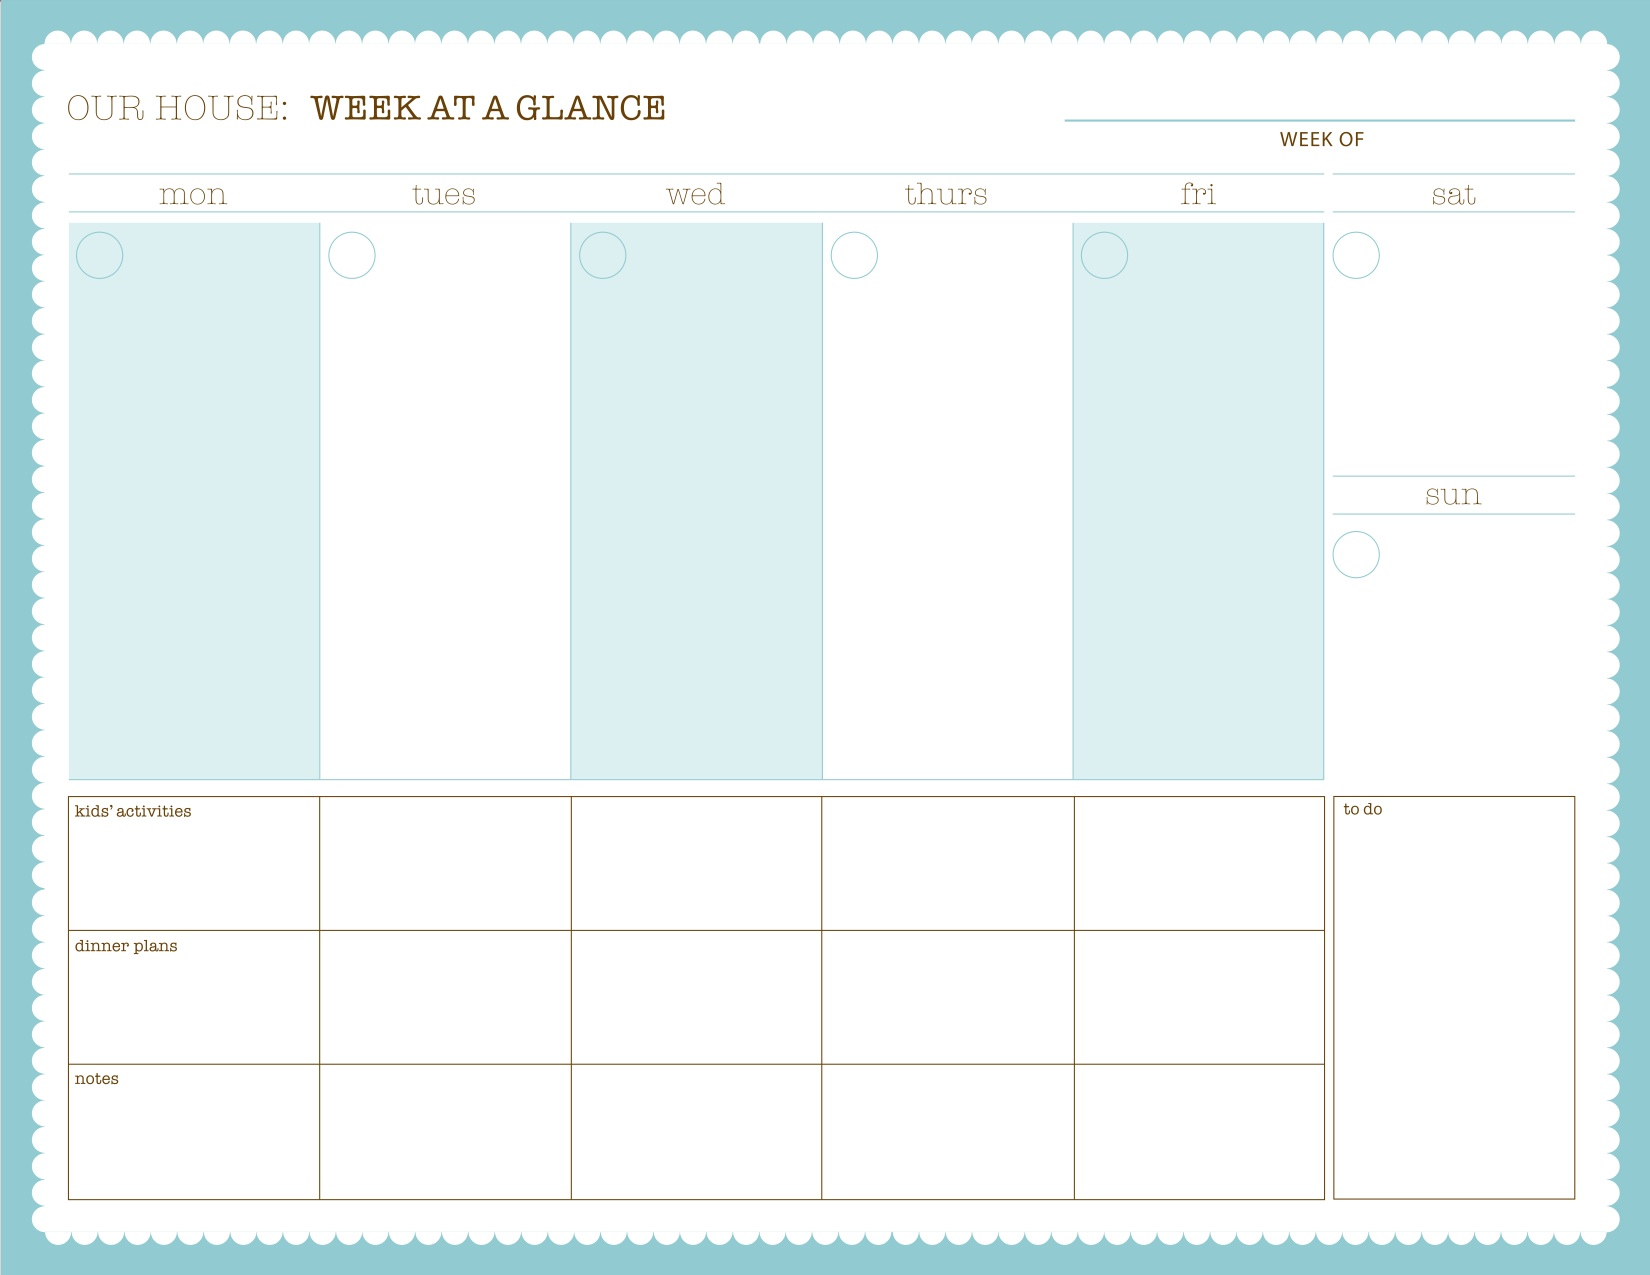 Love that paper solution kristen lunceford for Day at a glance calendar template